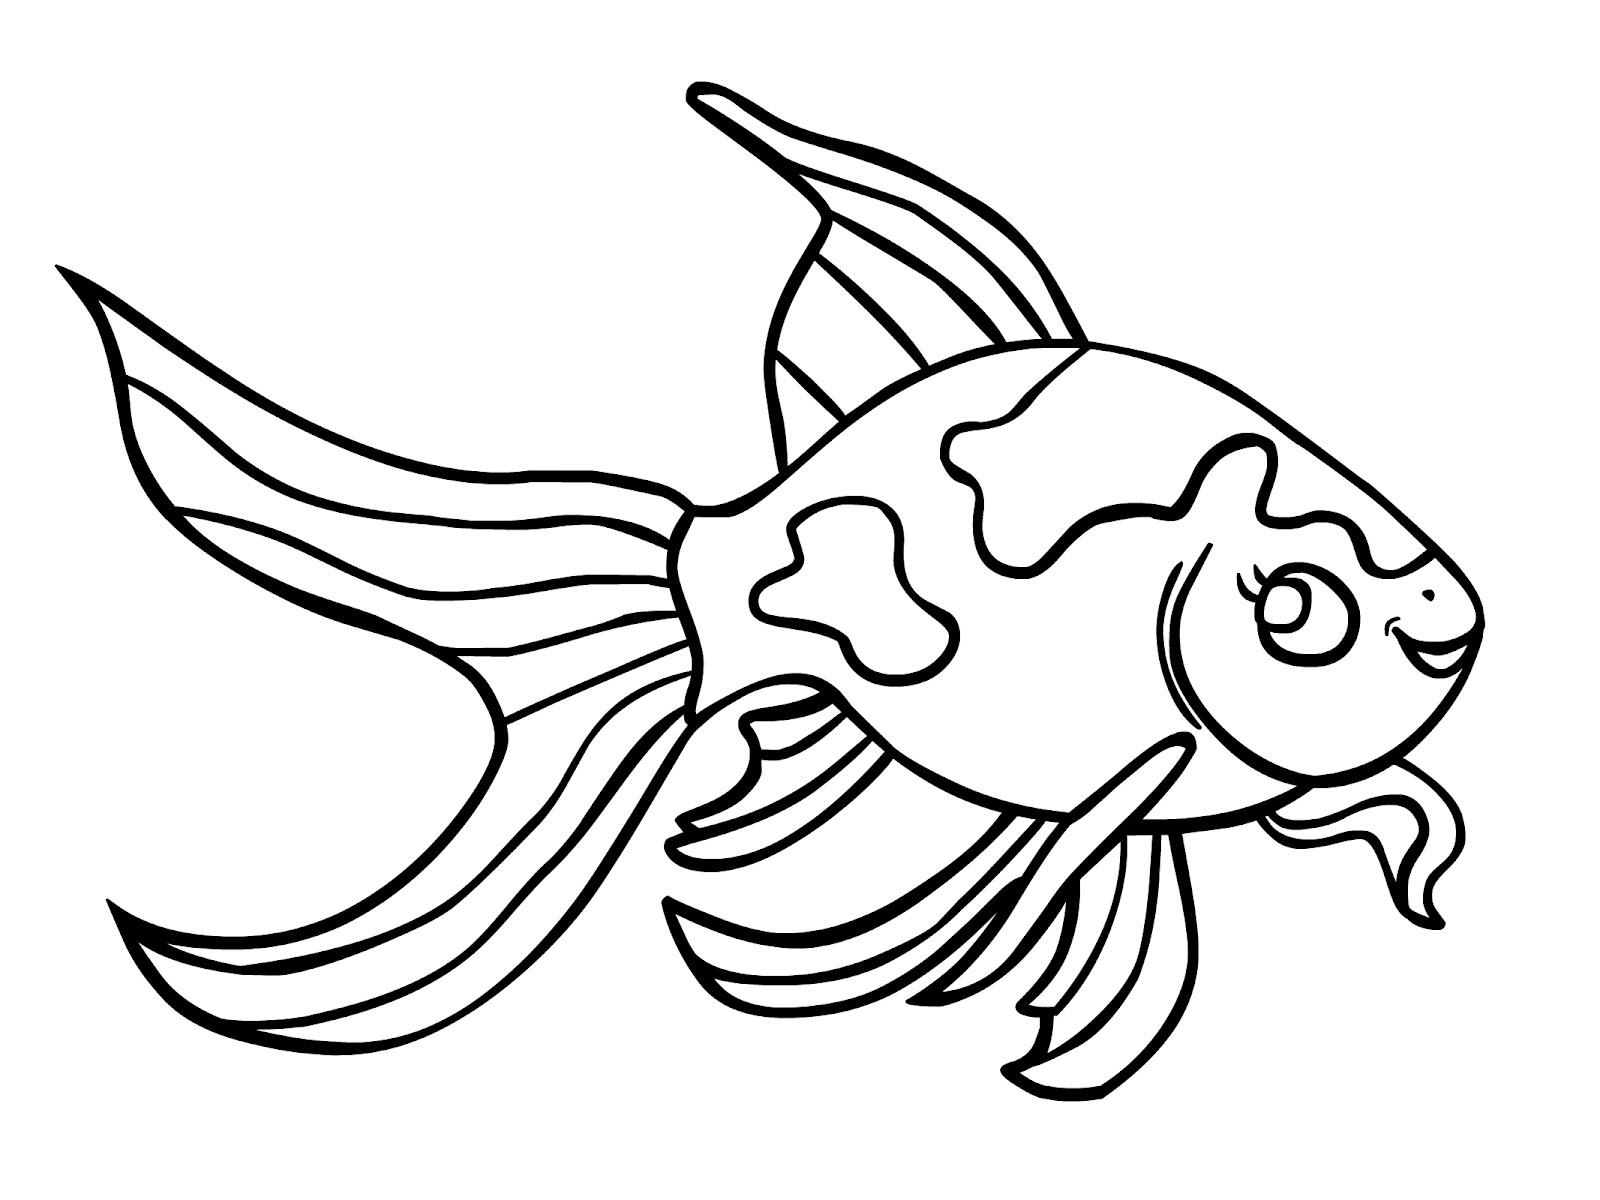 free coloring pages fish sea fish coloring pages download and print for free fish pages coloring free